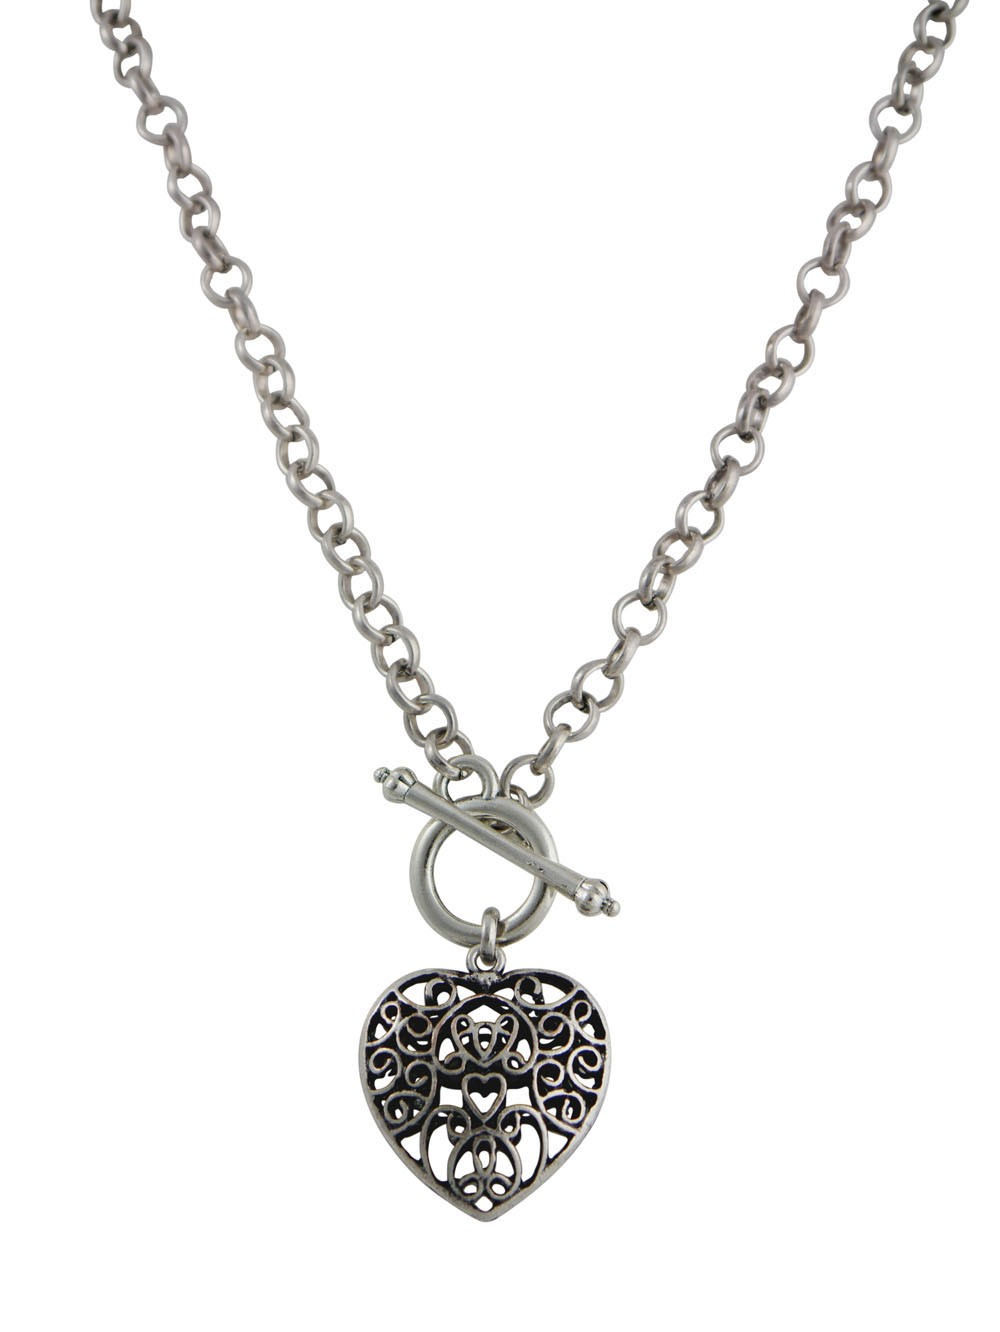 Vintage Style Heart Pendant Necklace